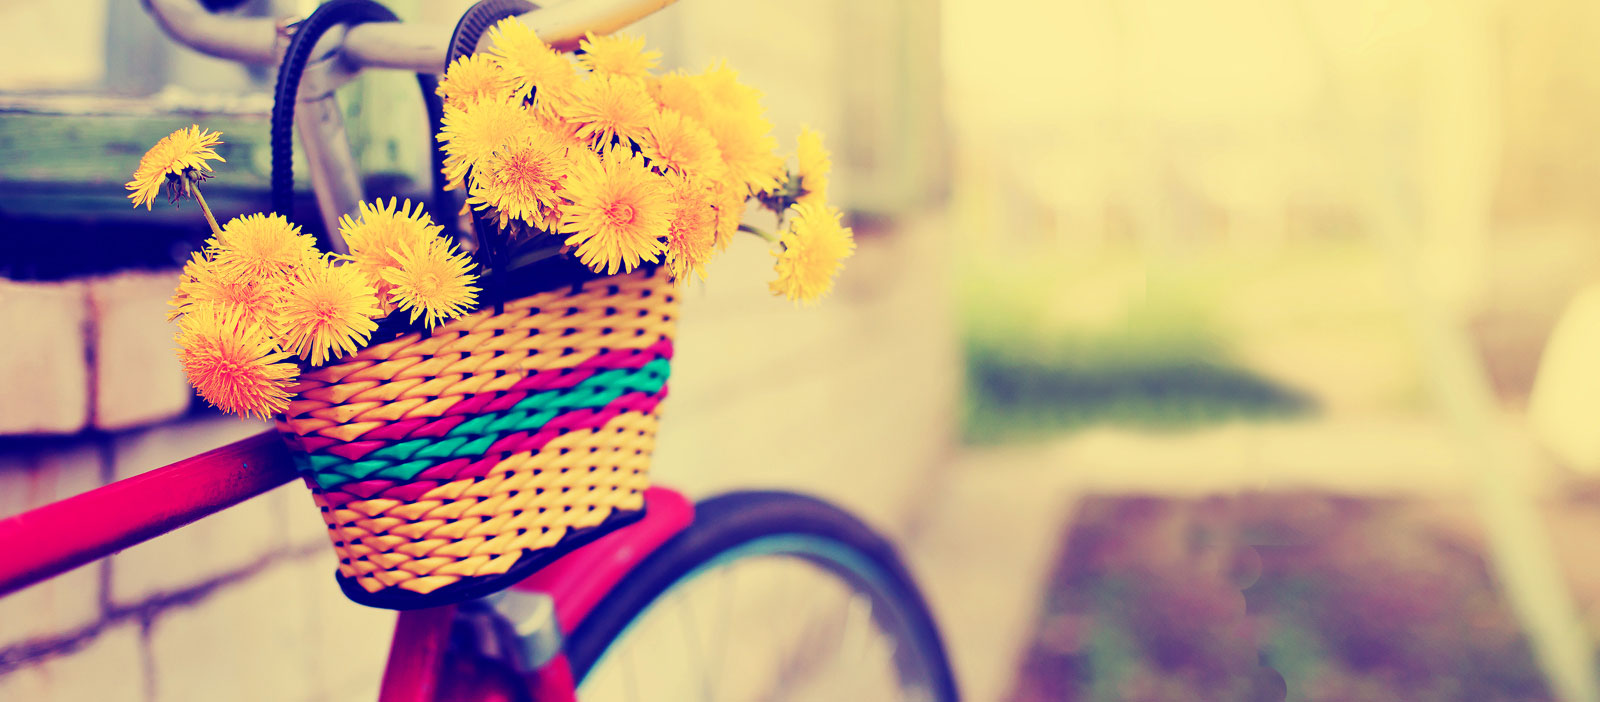 A bicycle with sunflowers in the basket.